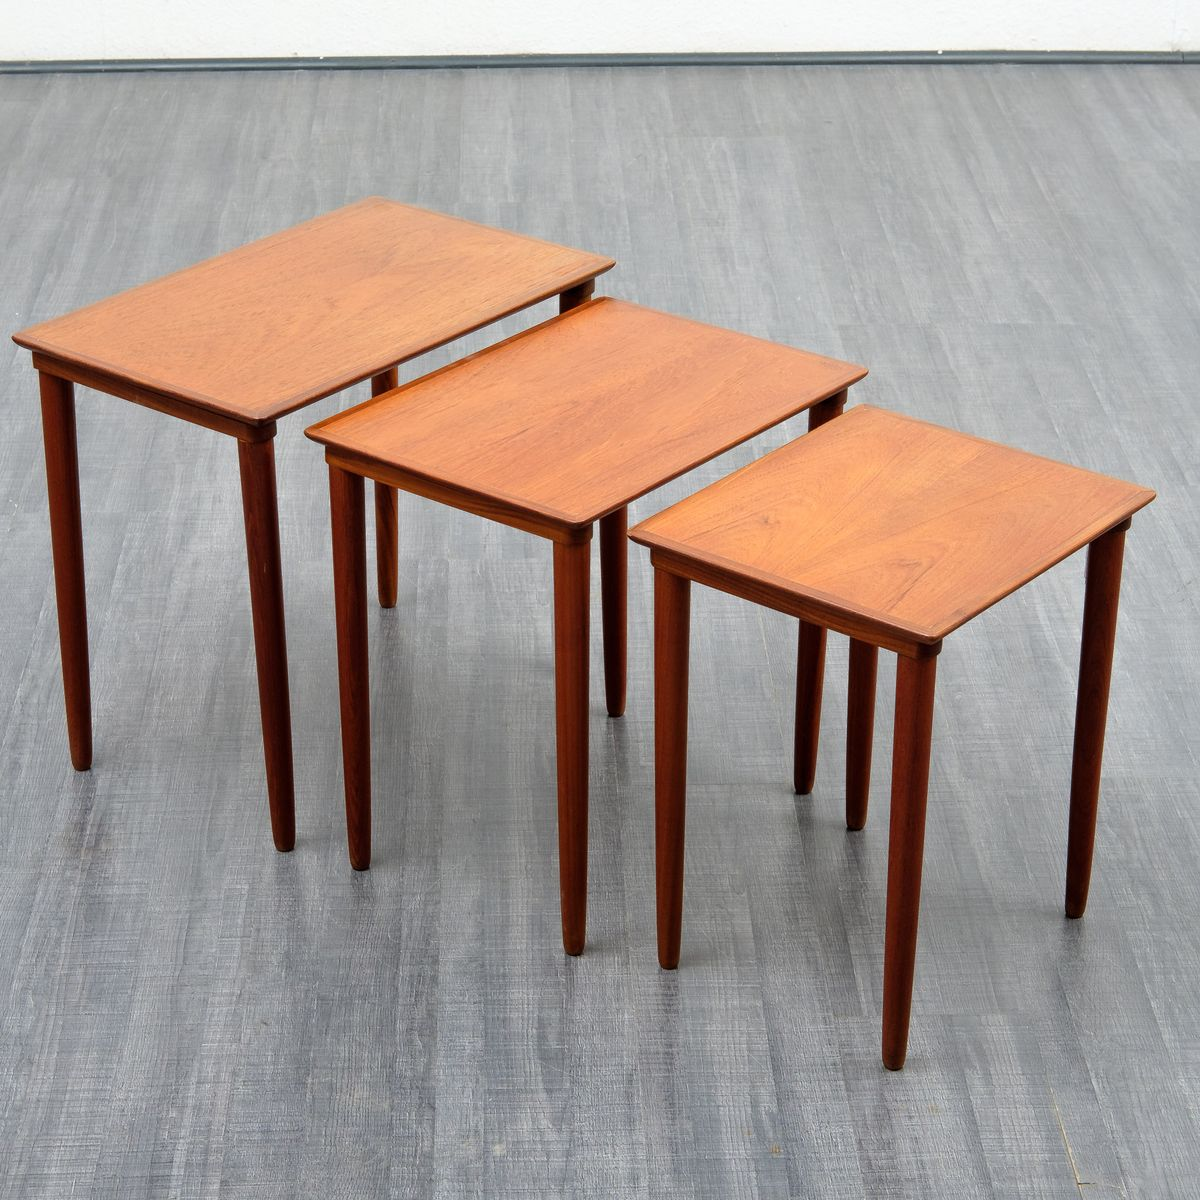 Teak Coffee Table South Africa: Teak Nesting Tables, 1960s For Sale At Pamono